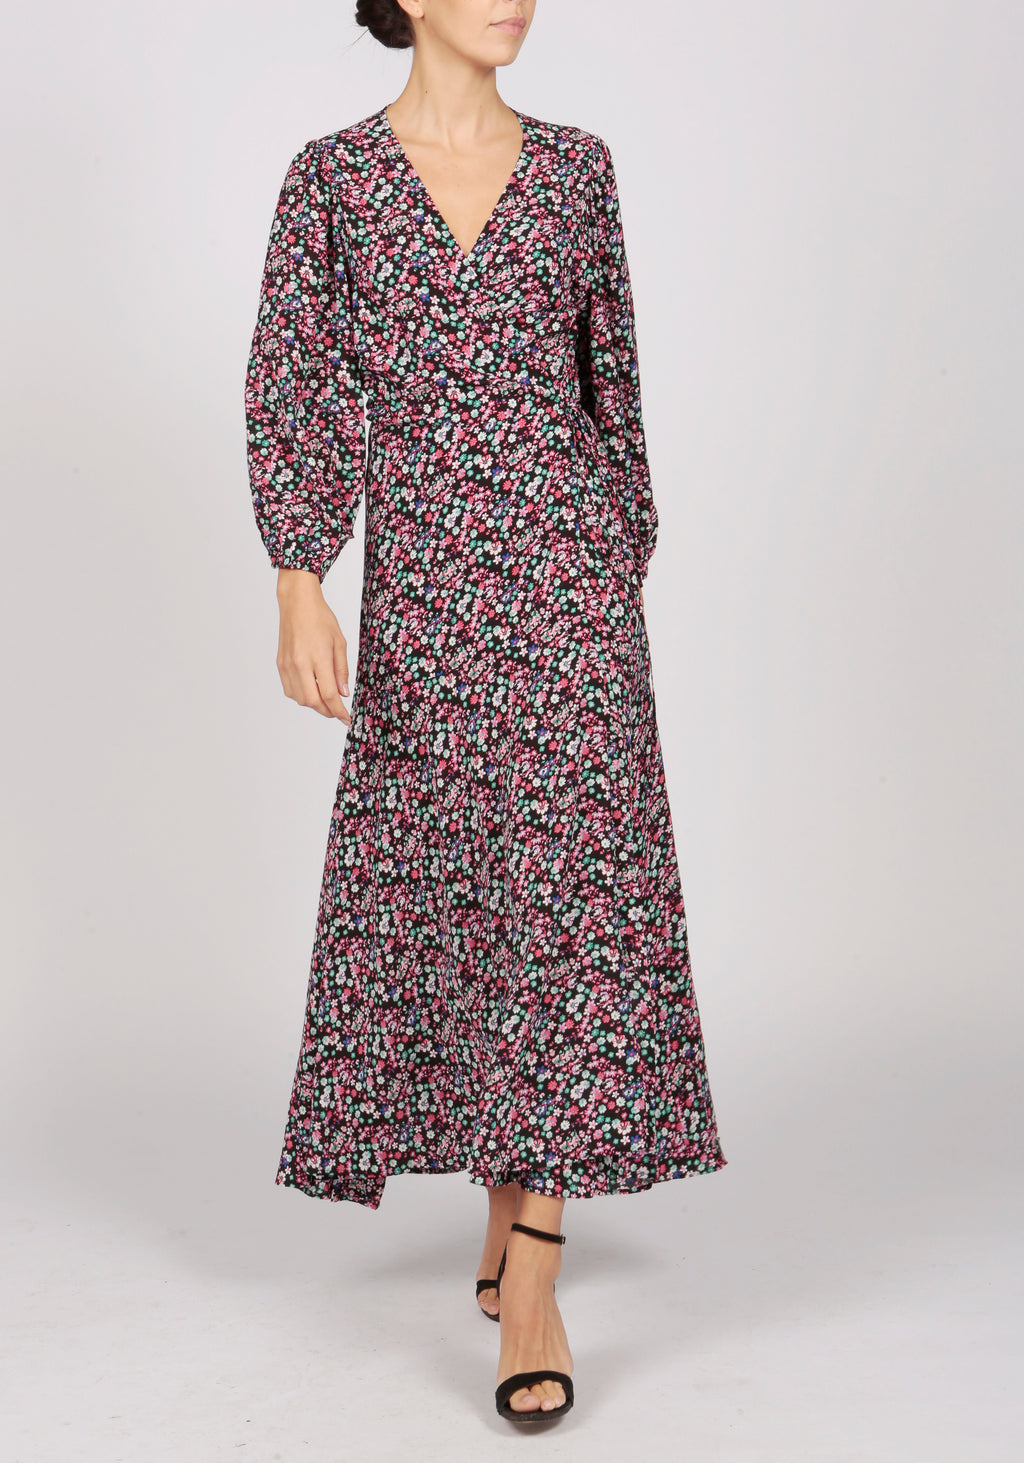 Essentiel Antwerp Black Floral Print Wrap Dress - RRP £270